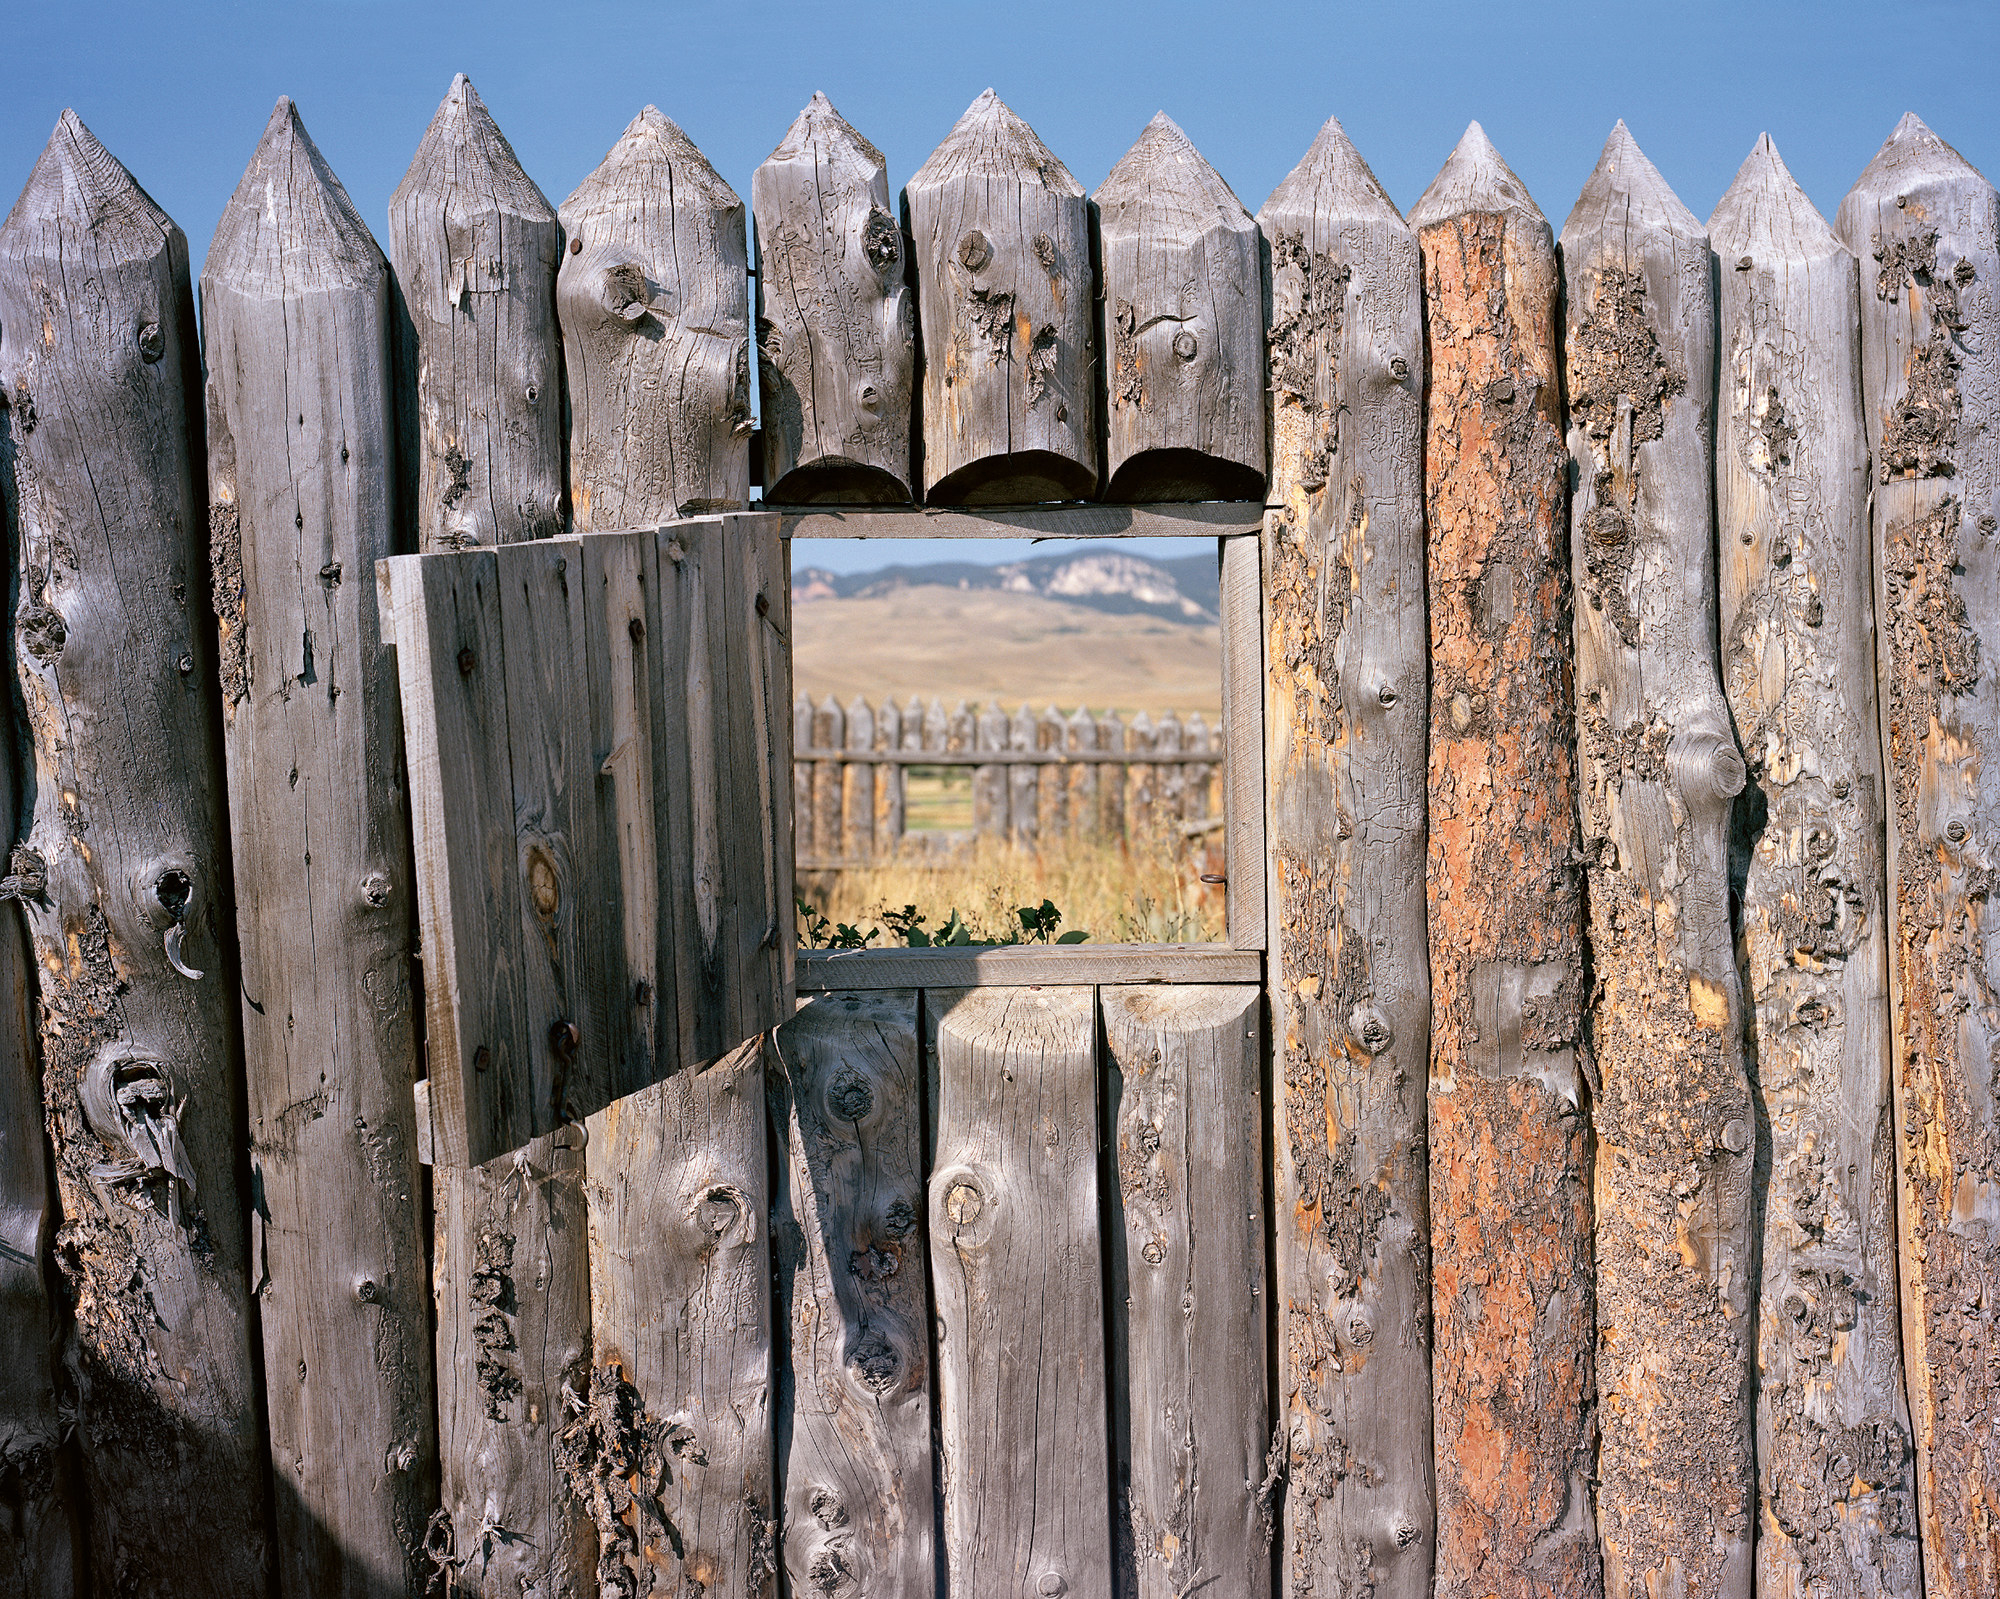 A window cut into walls made out of wood opens out into another row of wood walls and arid grassland